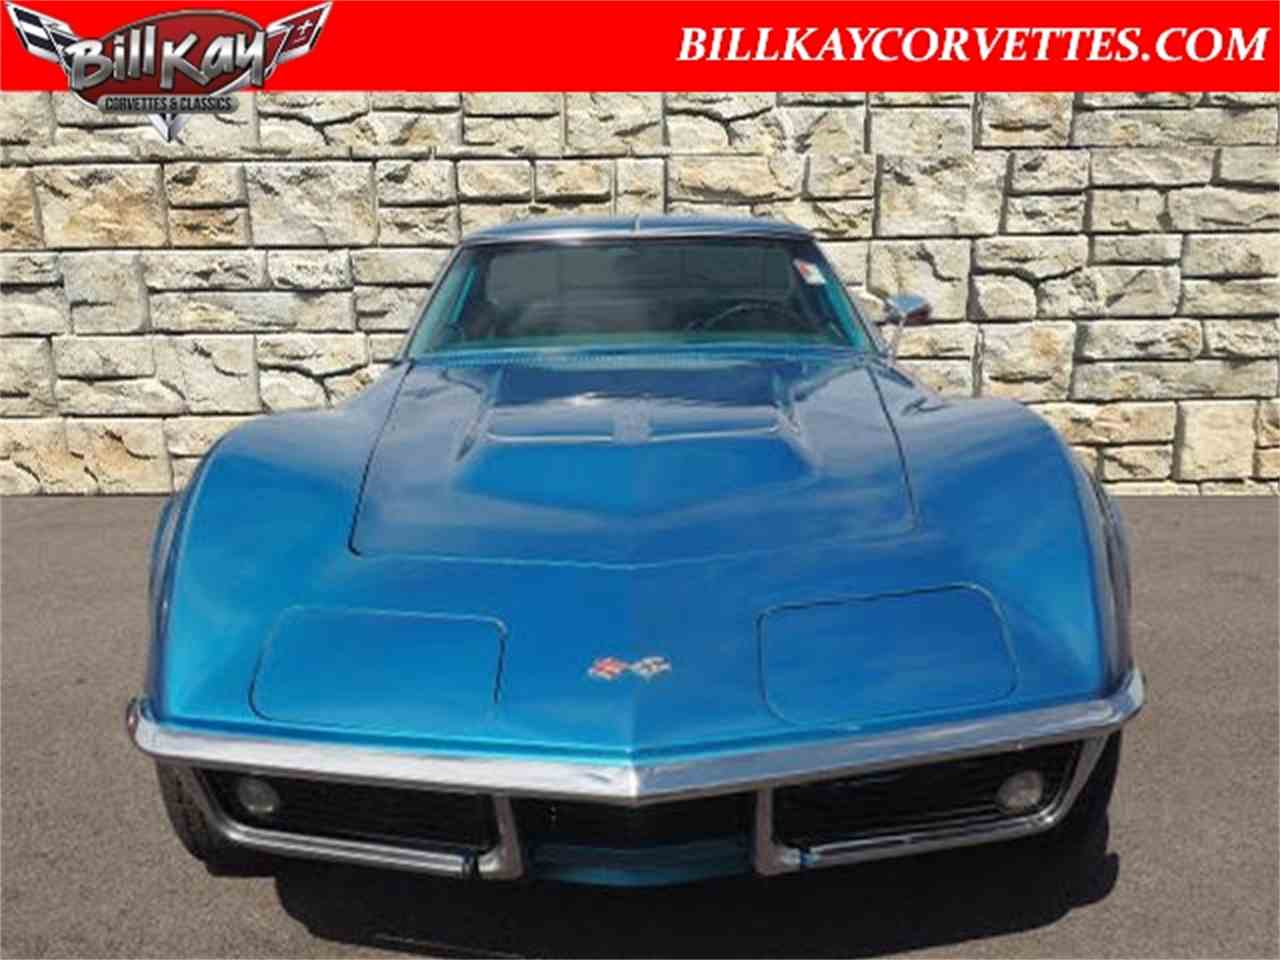 Large Picture of '69 Corvette - $27,980.00 Offered by Bill Kay Corvettes and Classics - MTY0